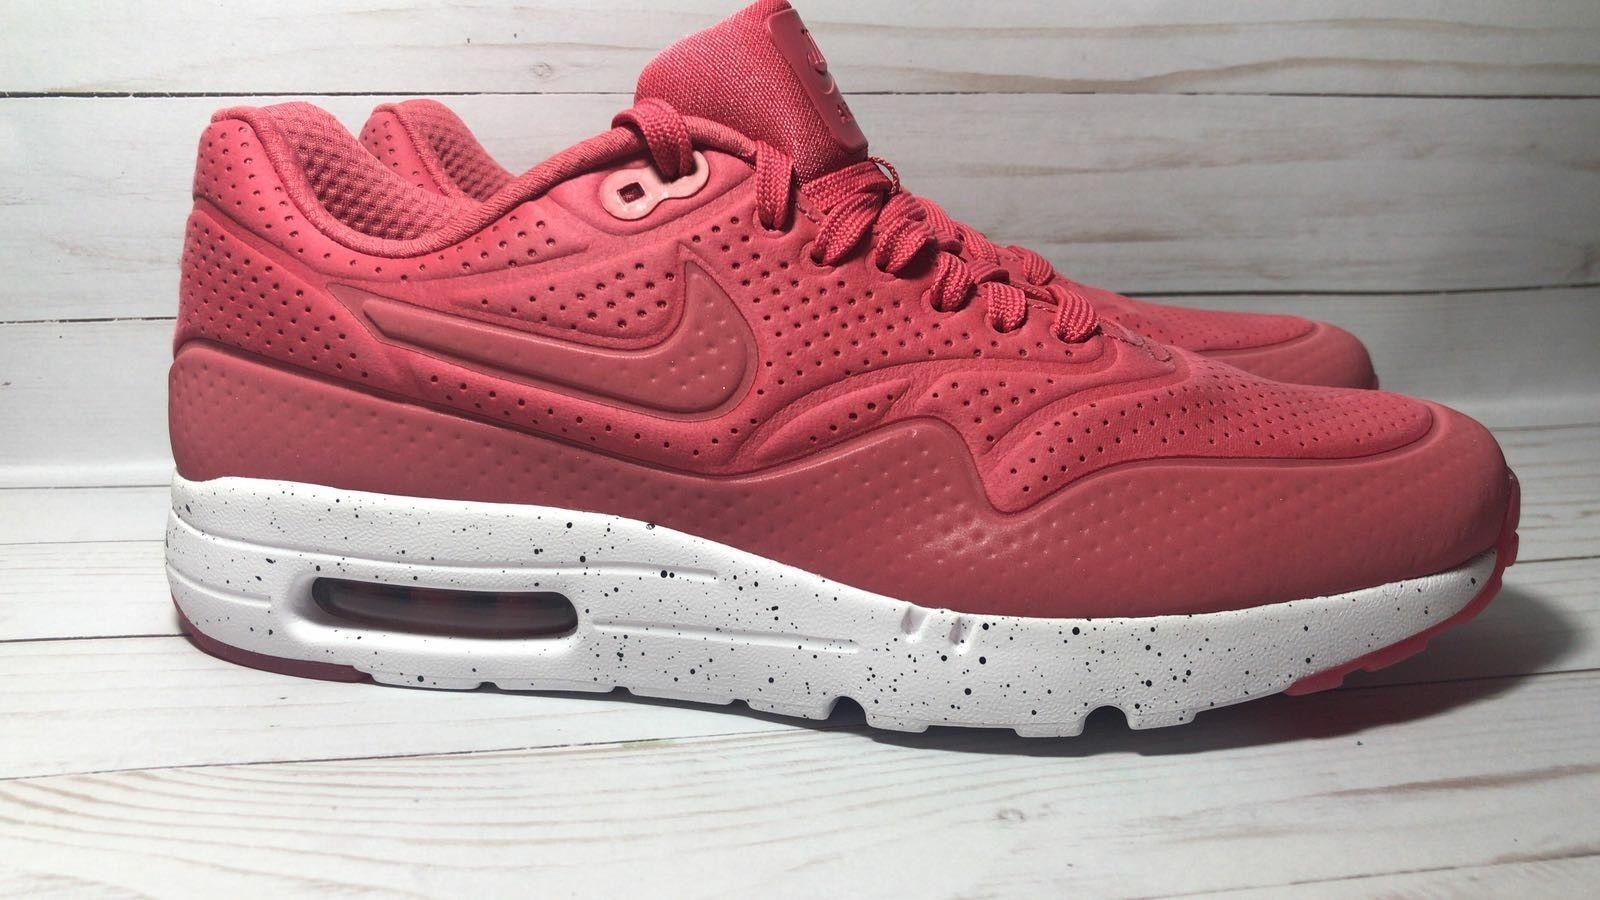 NIKE Air Max 1 One One One ultra moire Neu Gr:44 flyknit 90 95 97 705297-611 terra ROT 0dfb67